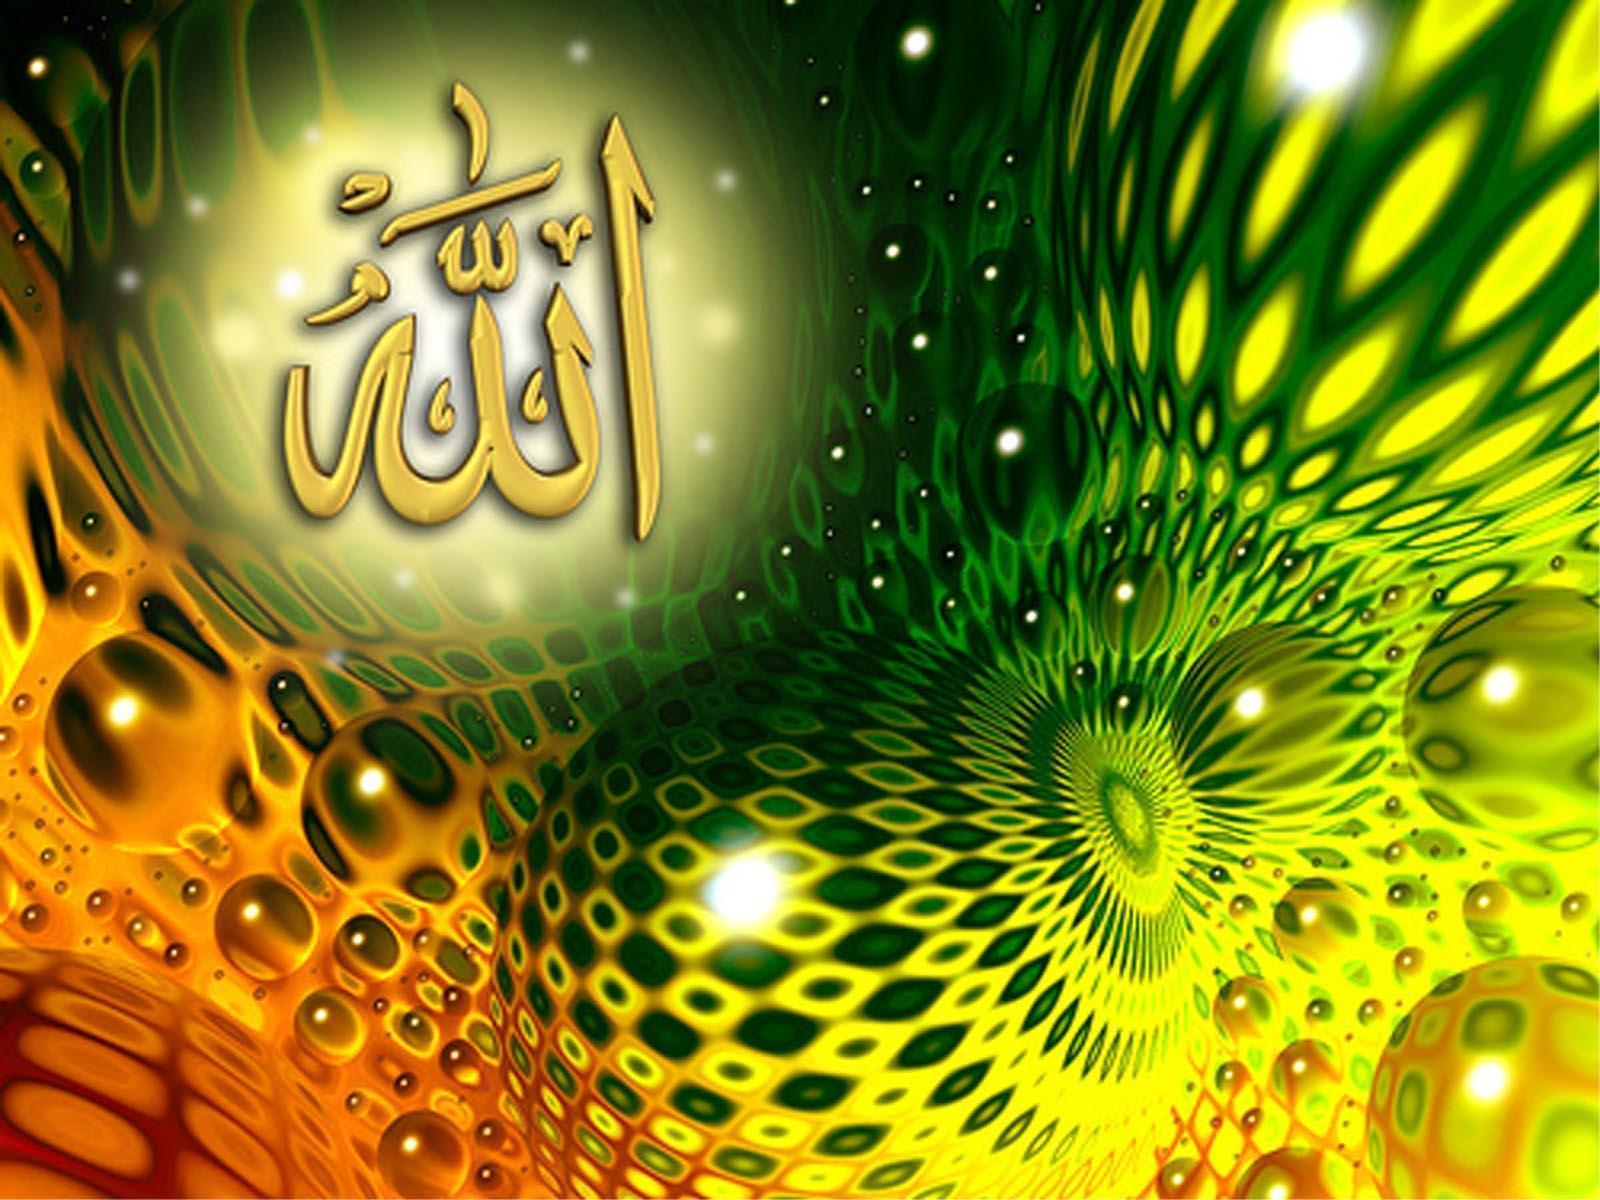 Allah live wallpaper 1. 3 apk free 3d islamic lwp download.